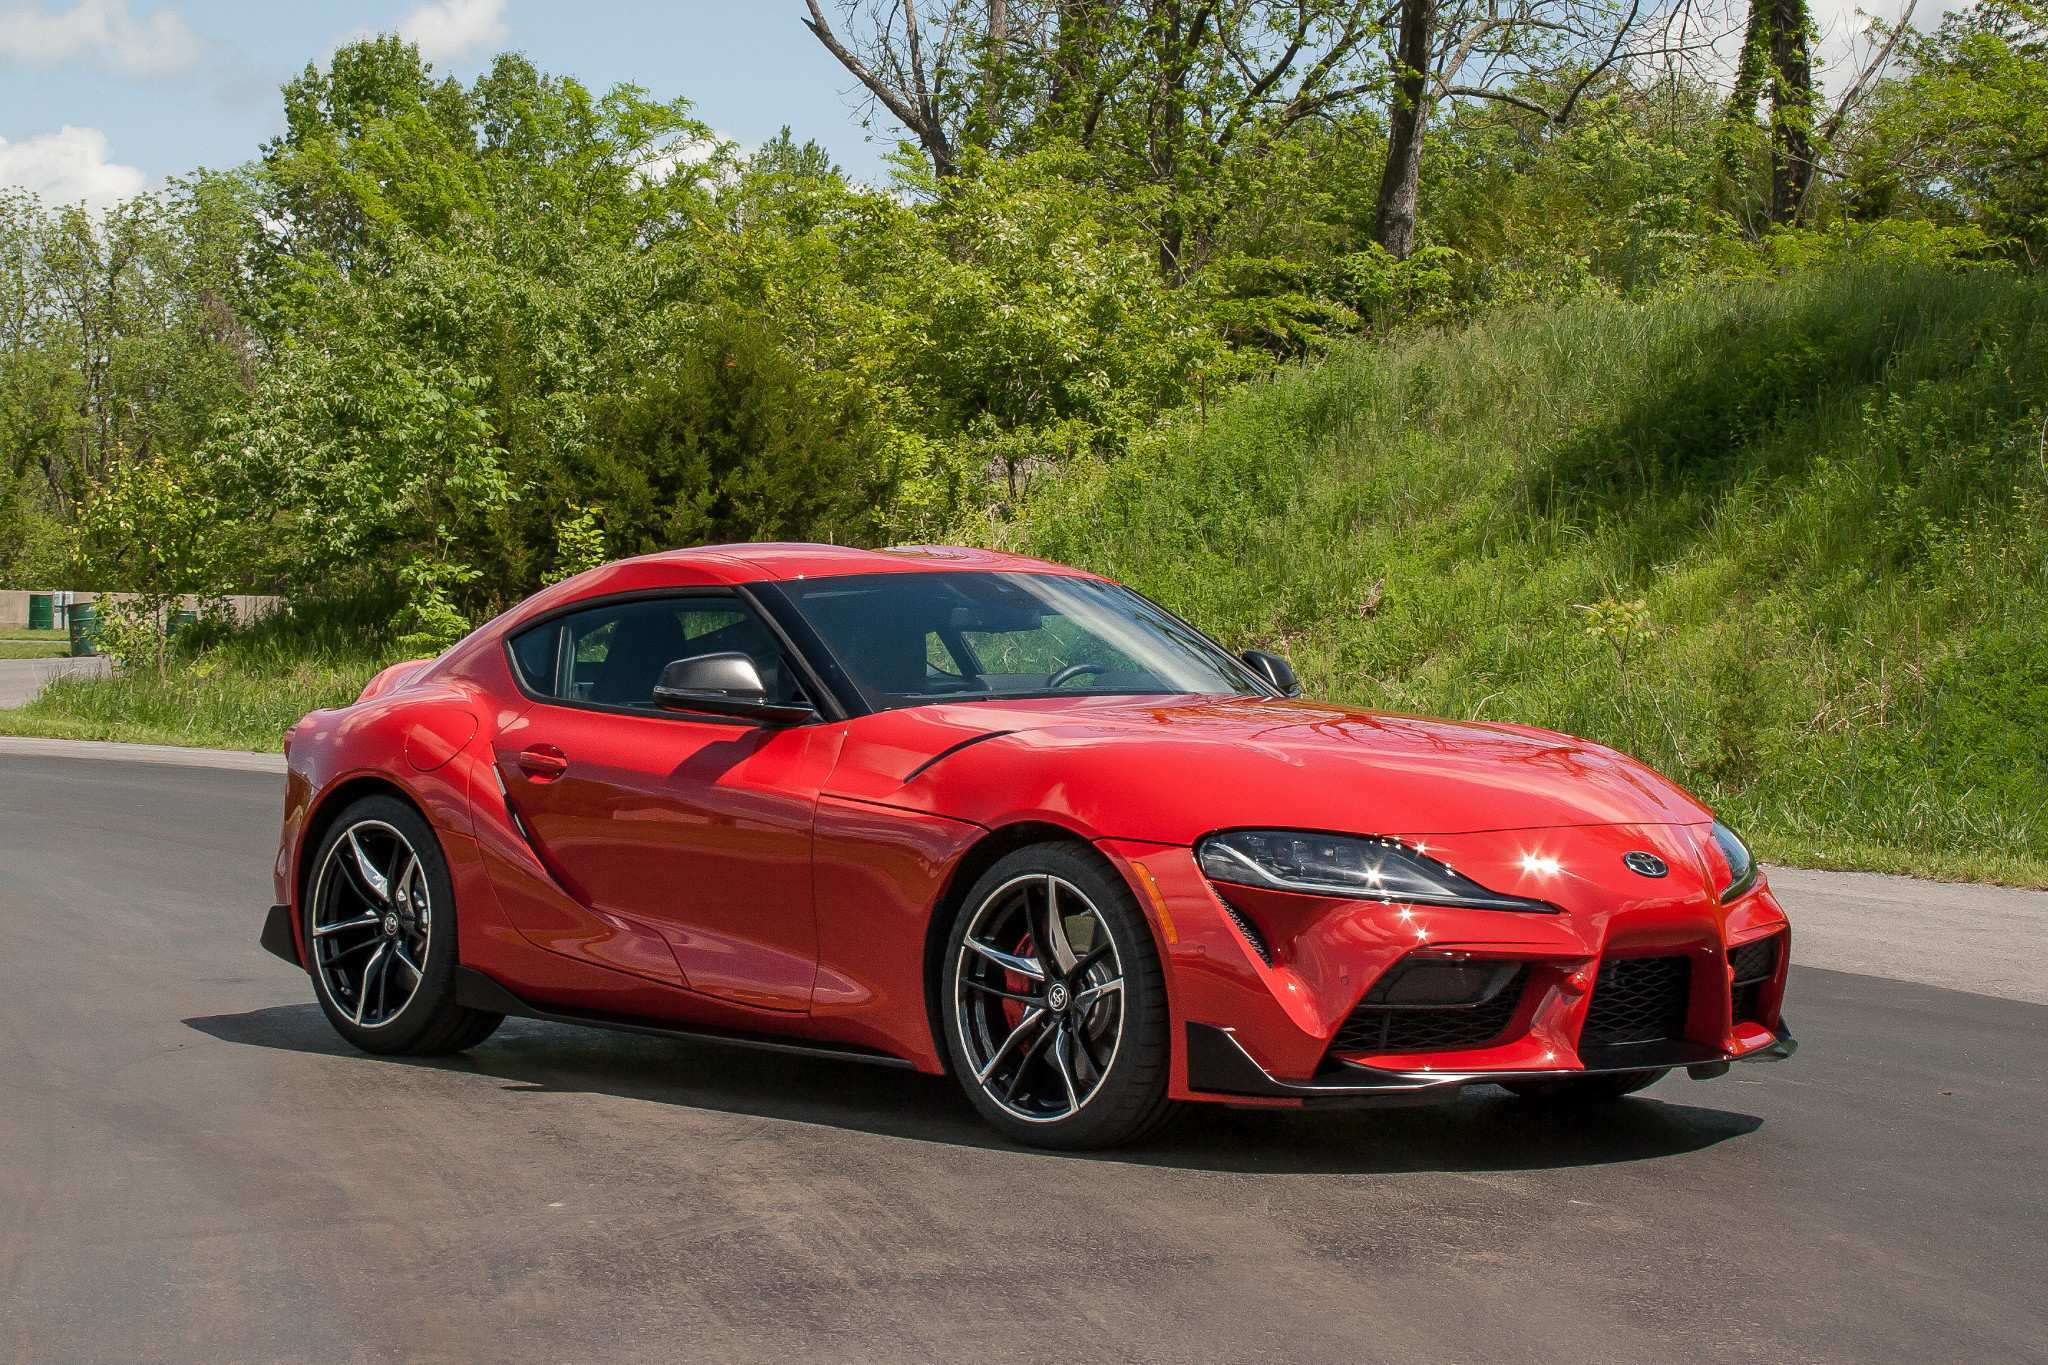 14 All New 2020 Toyota Supra Price And Release Date